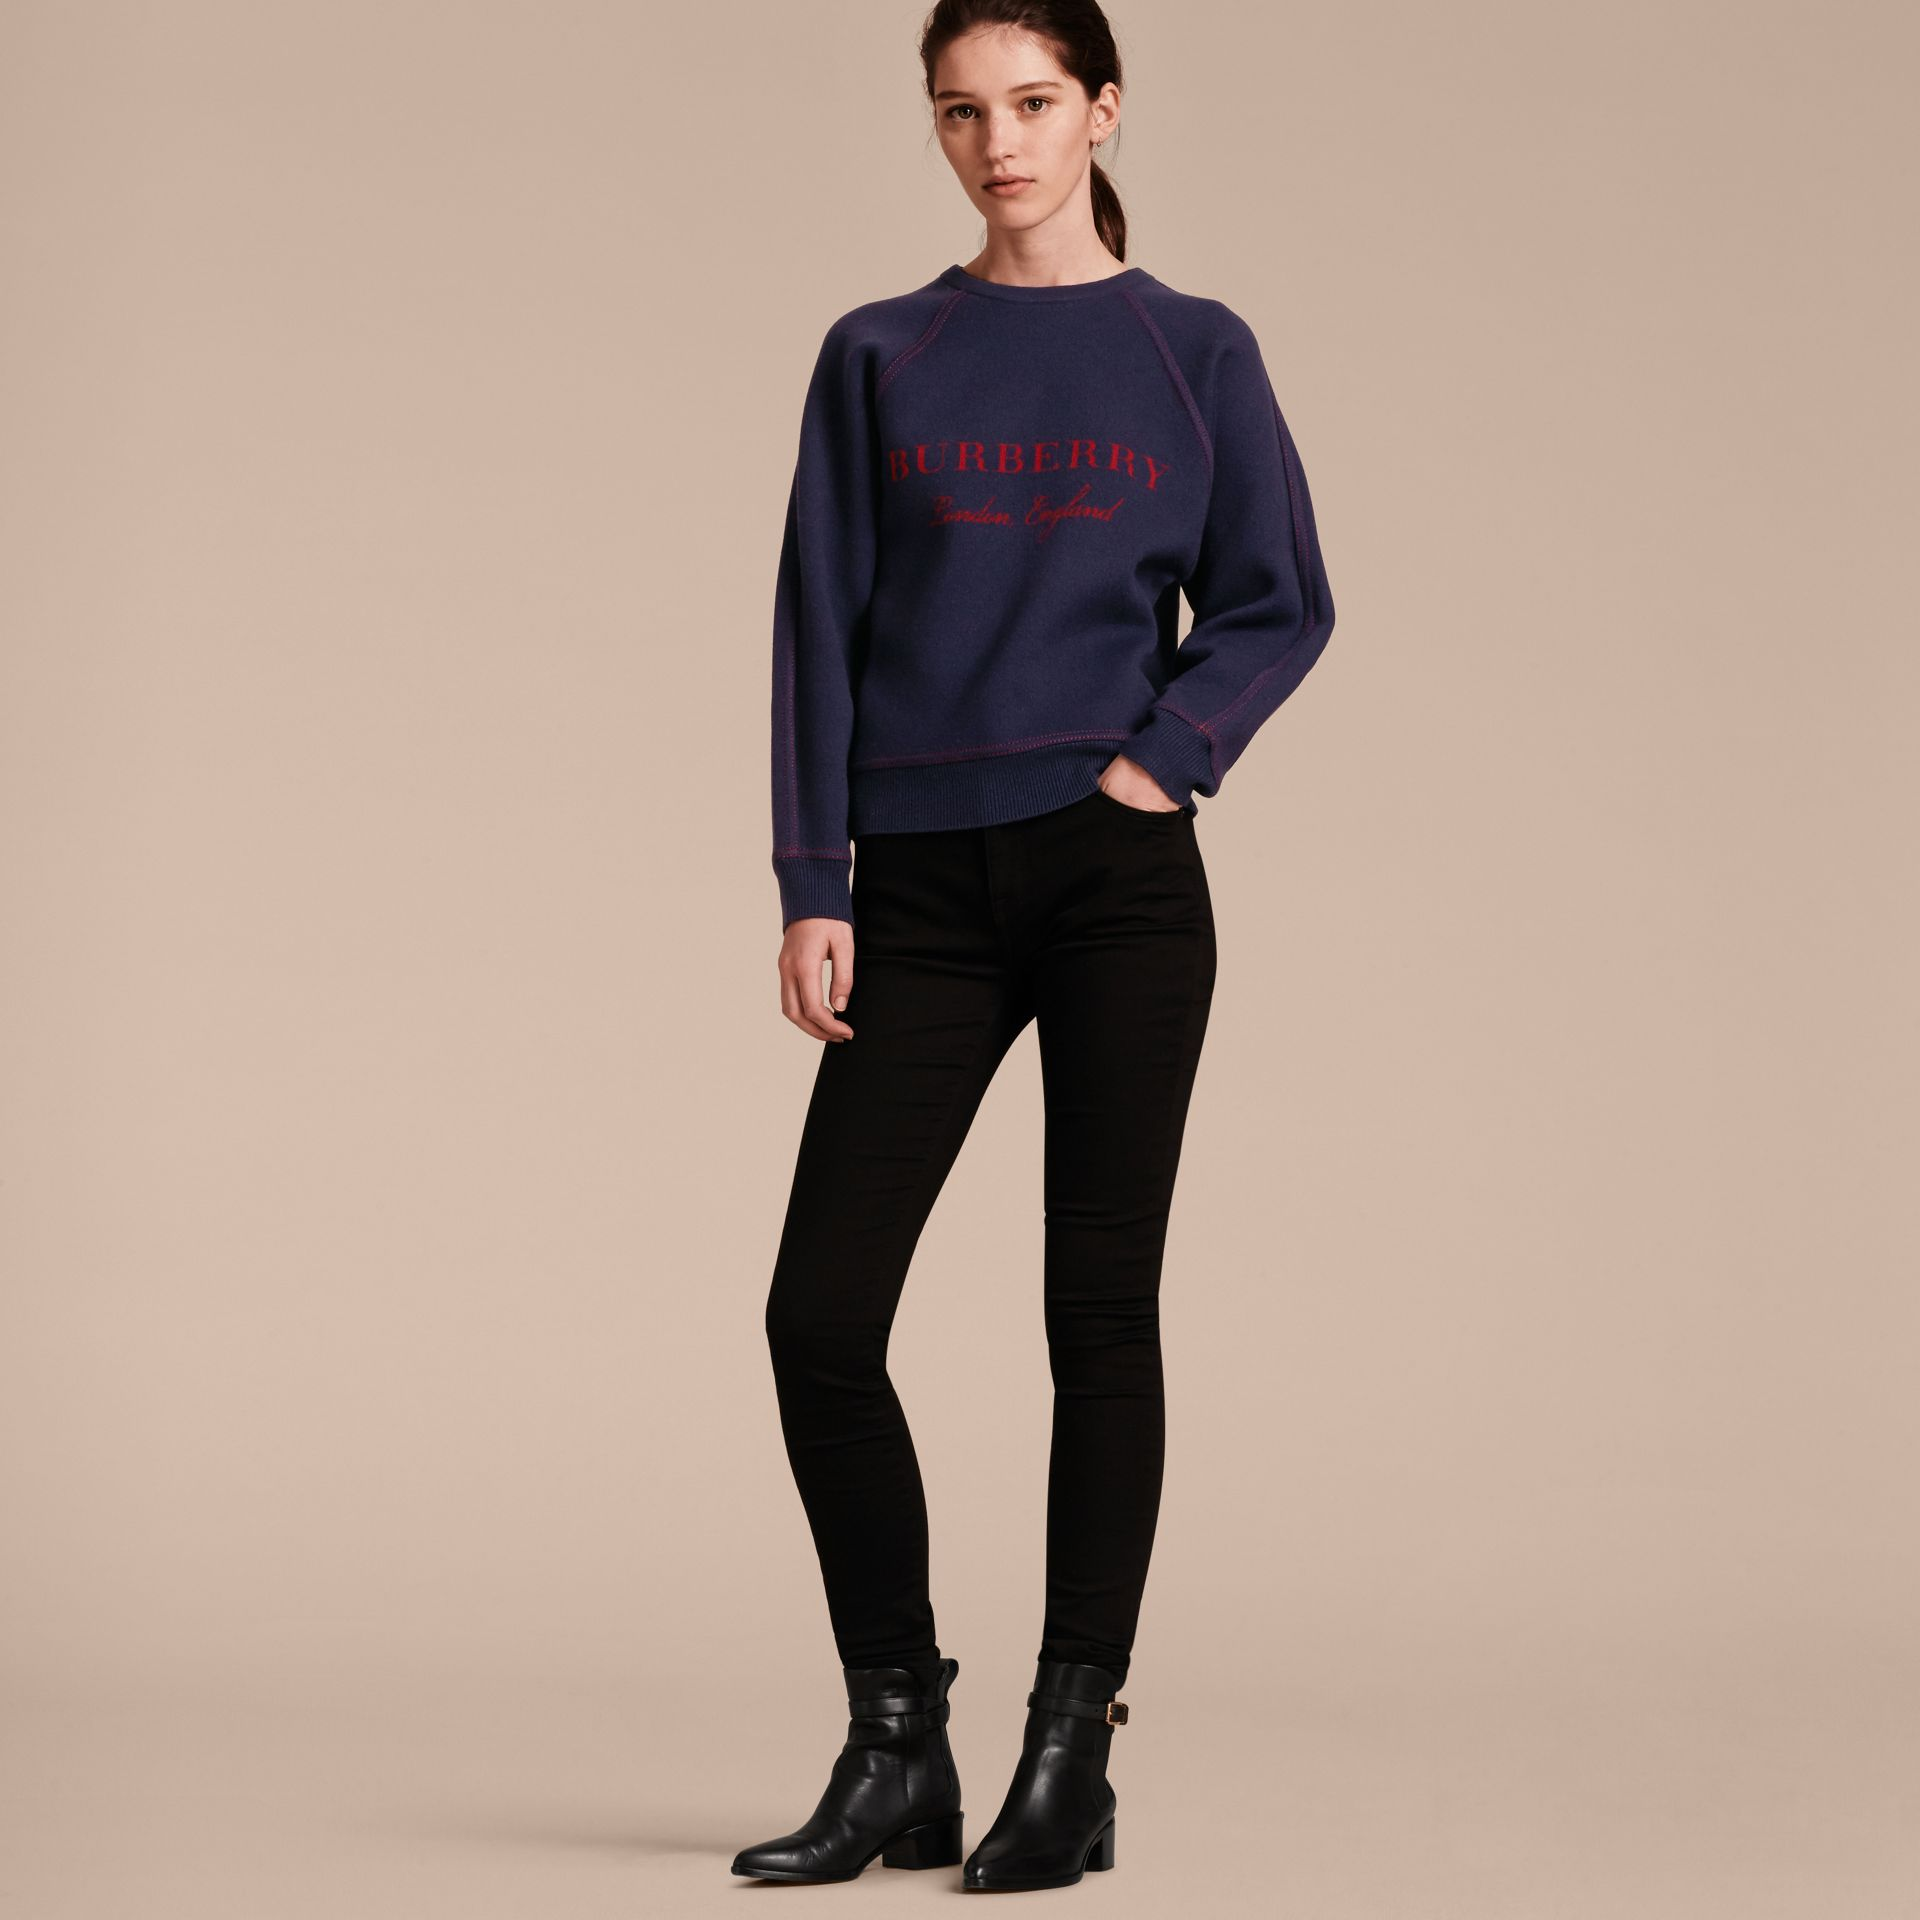 Topstitch Detail Wool Cashmere Blend Sweater in Navy - Women | Burberry United States - gallery image 6